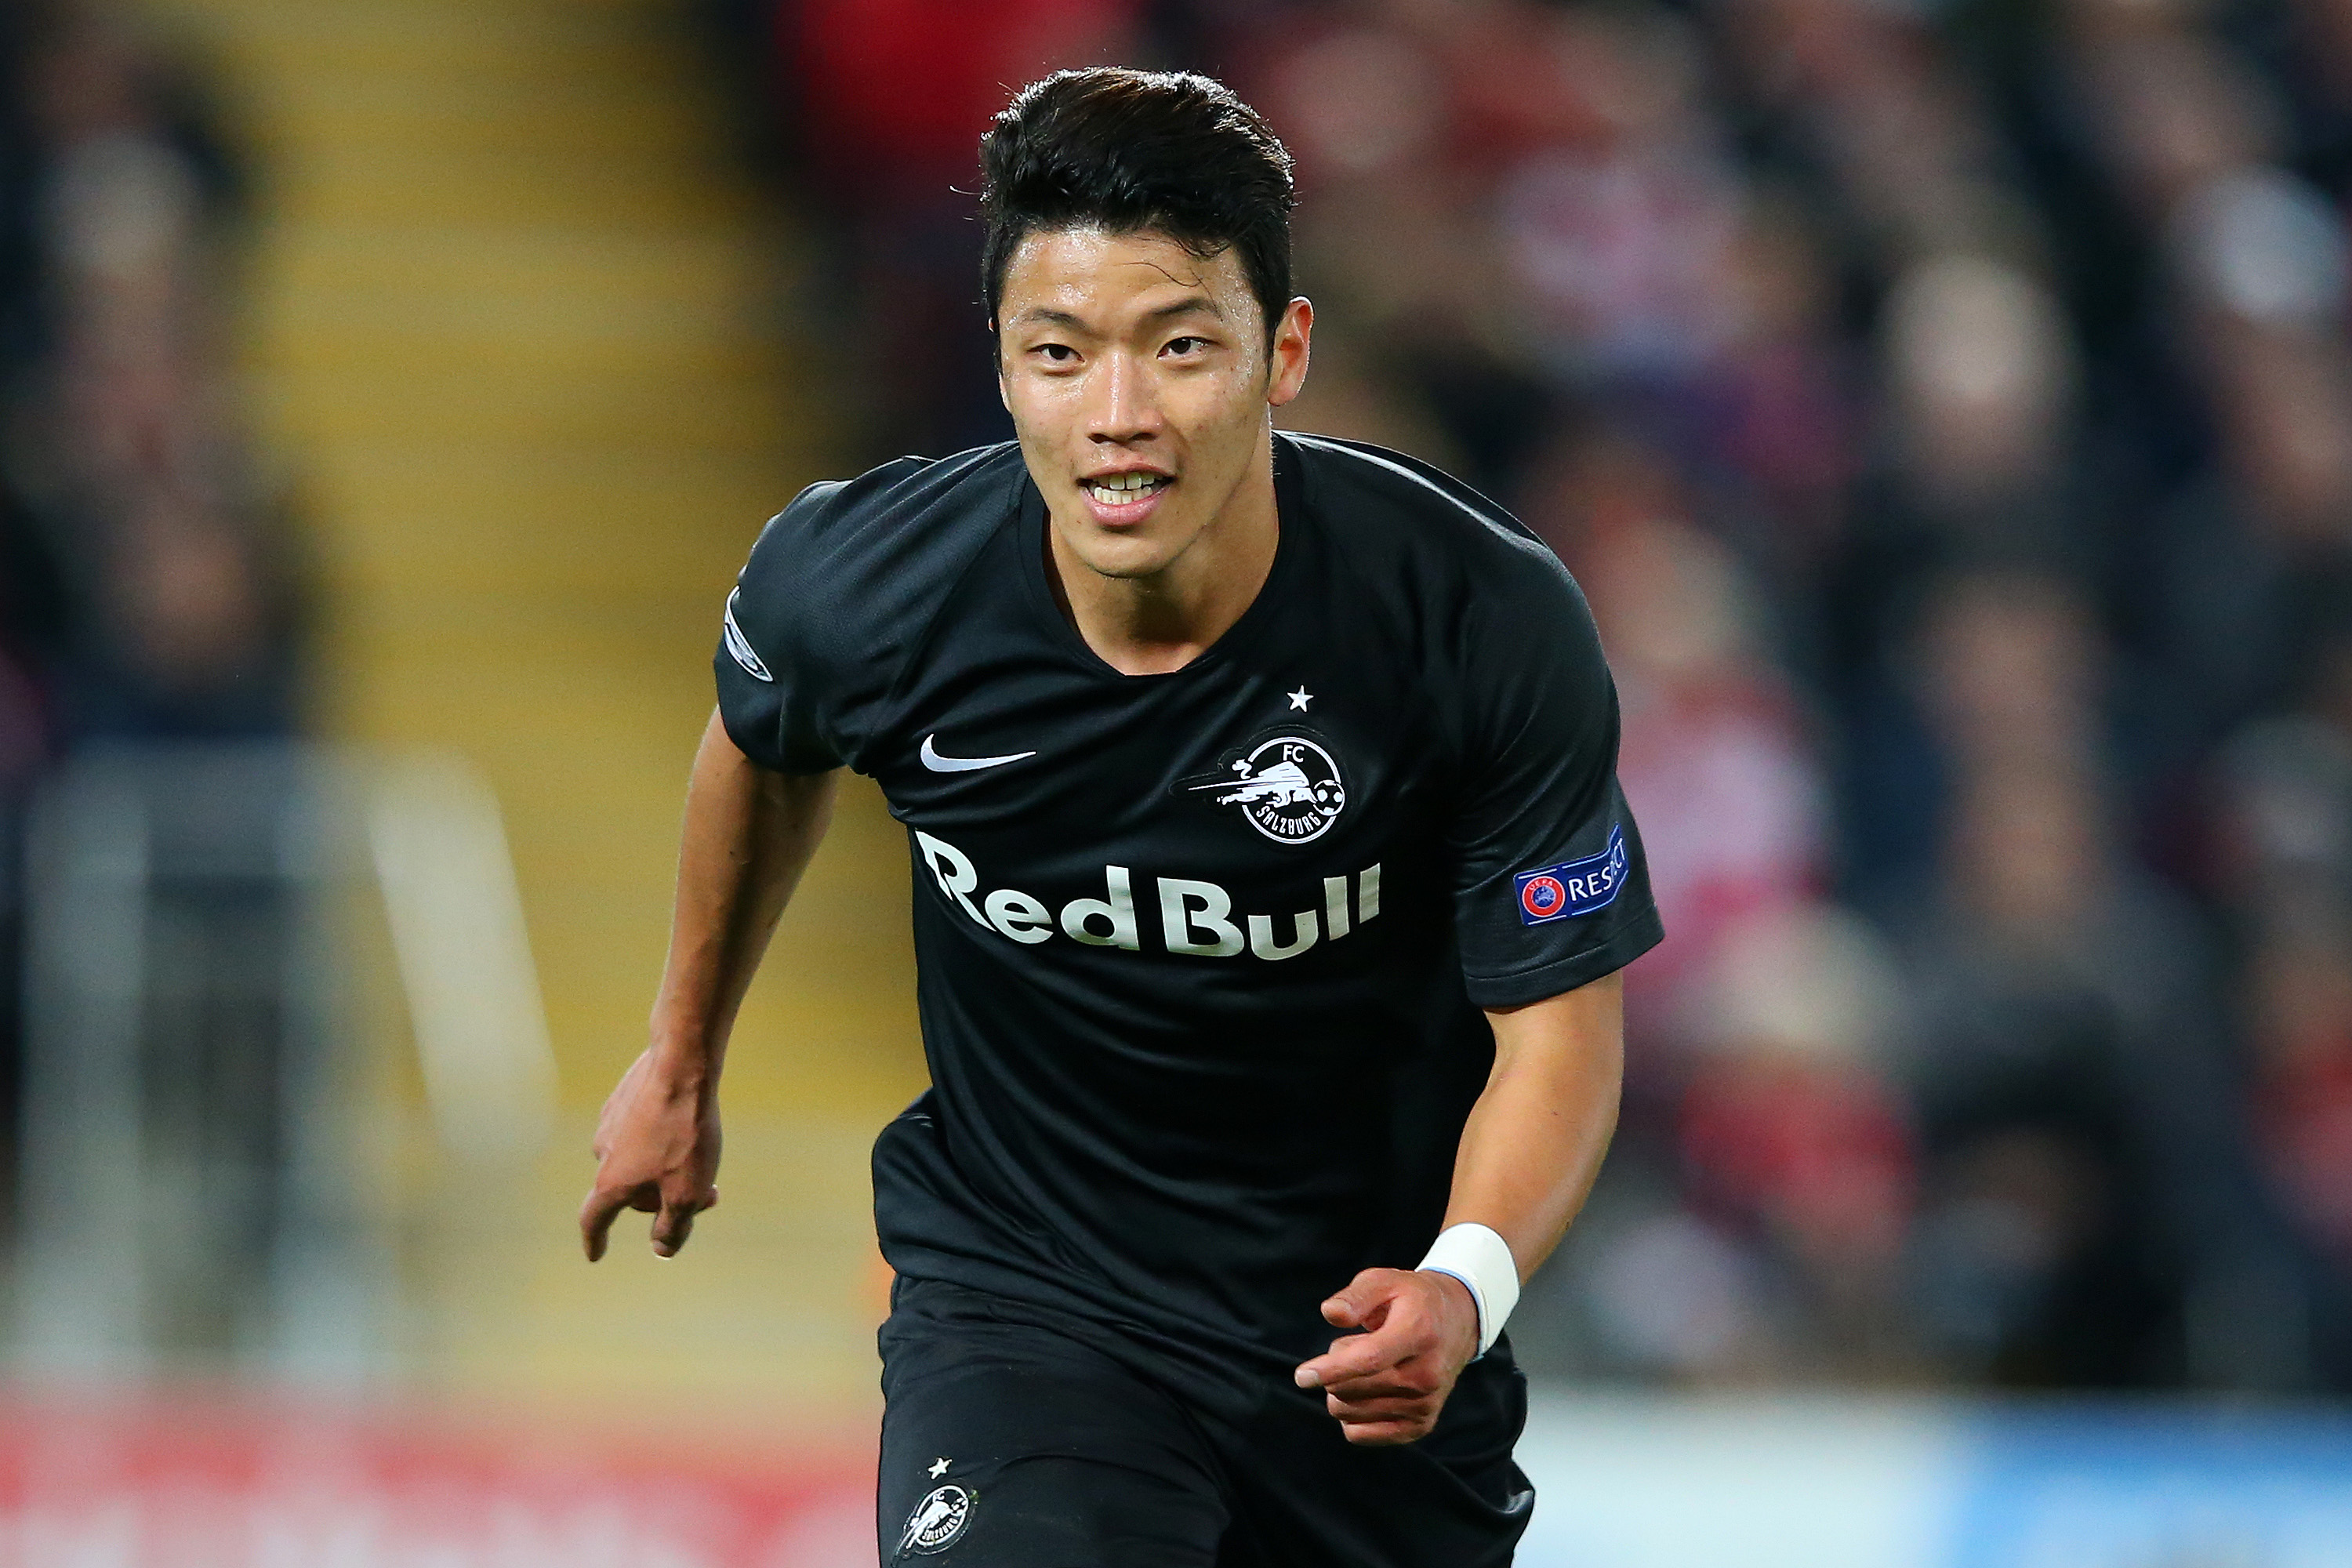 Hwang Hee-chan has been brought in to fill the void left by Timo Werner. (Photo by Alex Livesey/Getty Images)